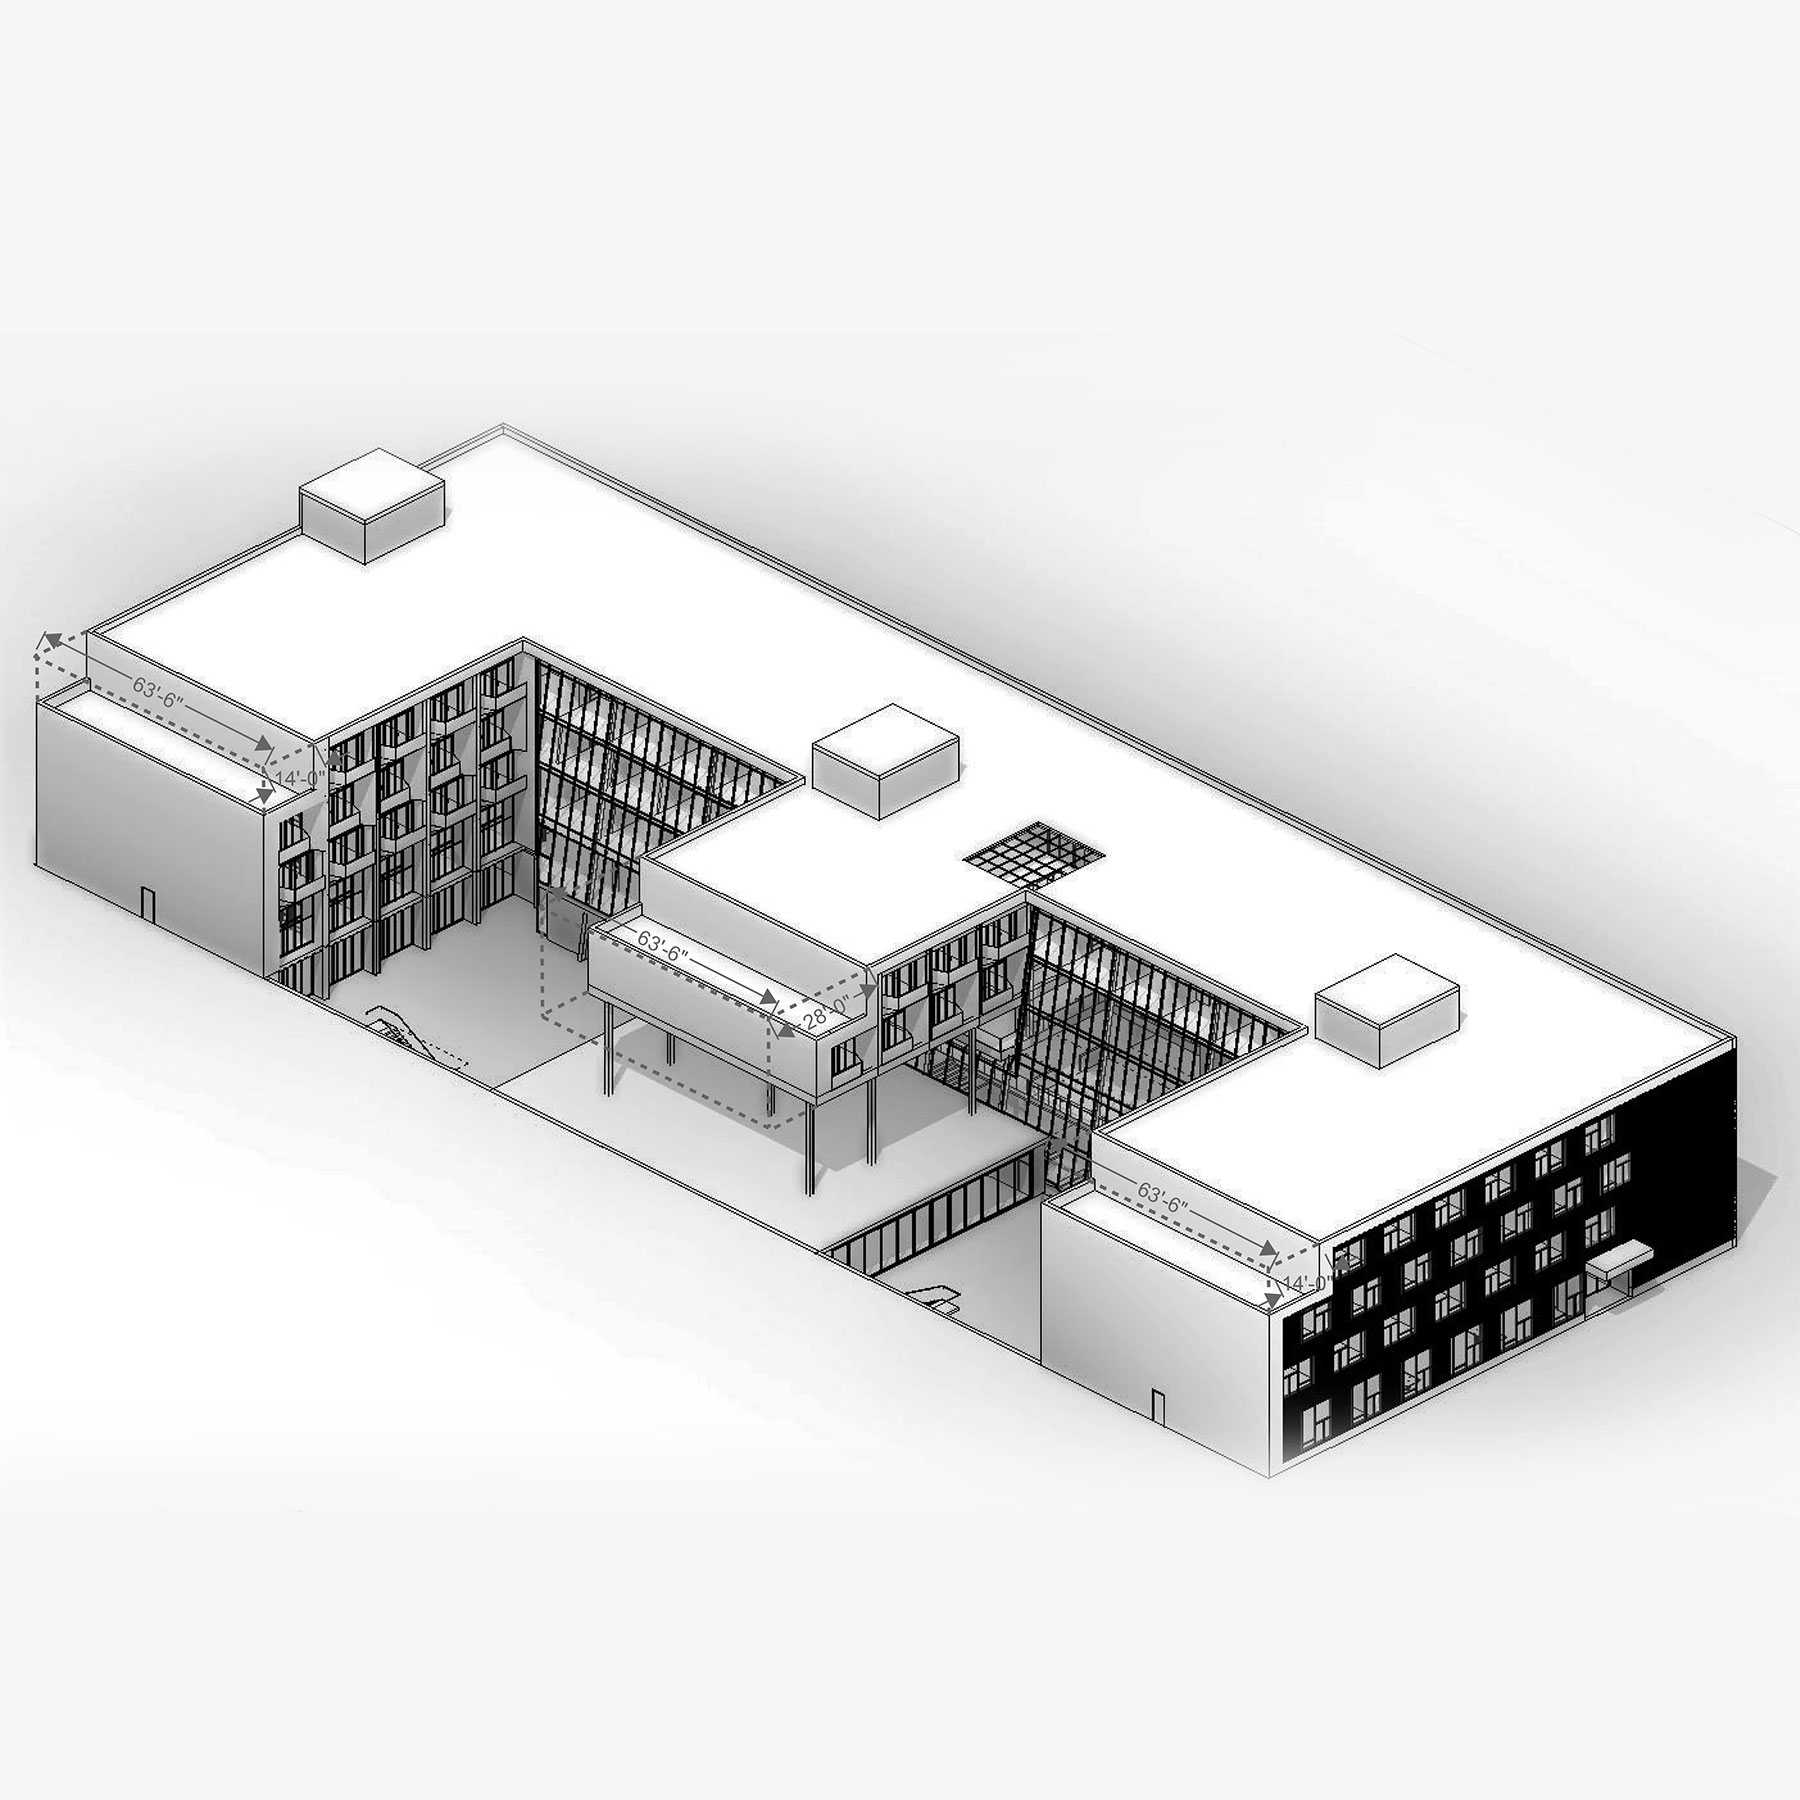 Isometric diagram of the Jericho Plaza Hotel project in Jericho, New York designed by the architecture studio Danny Forster & Architecture